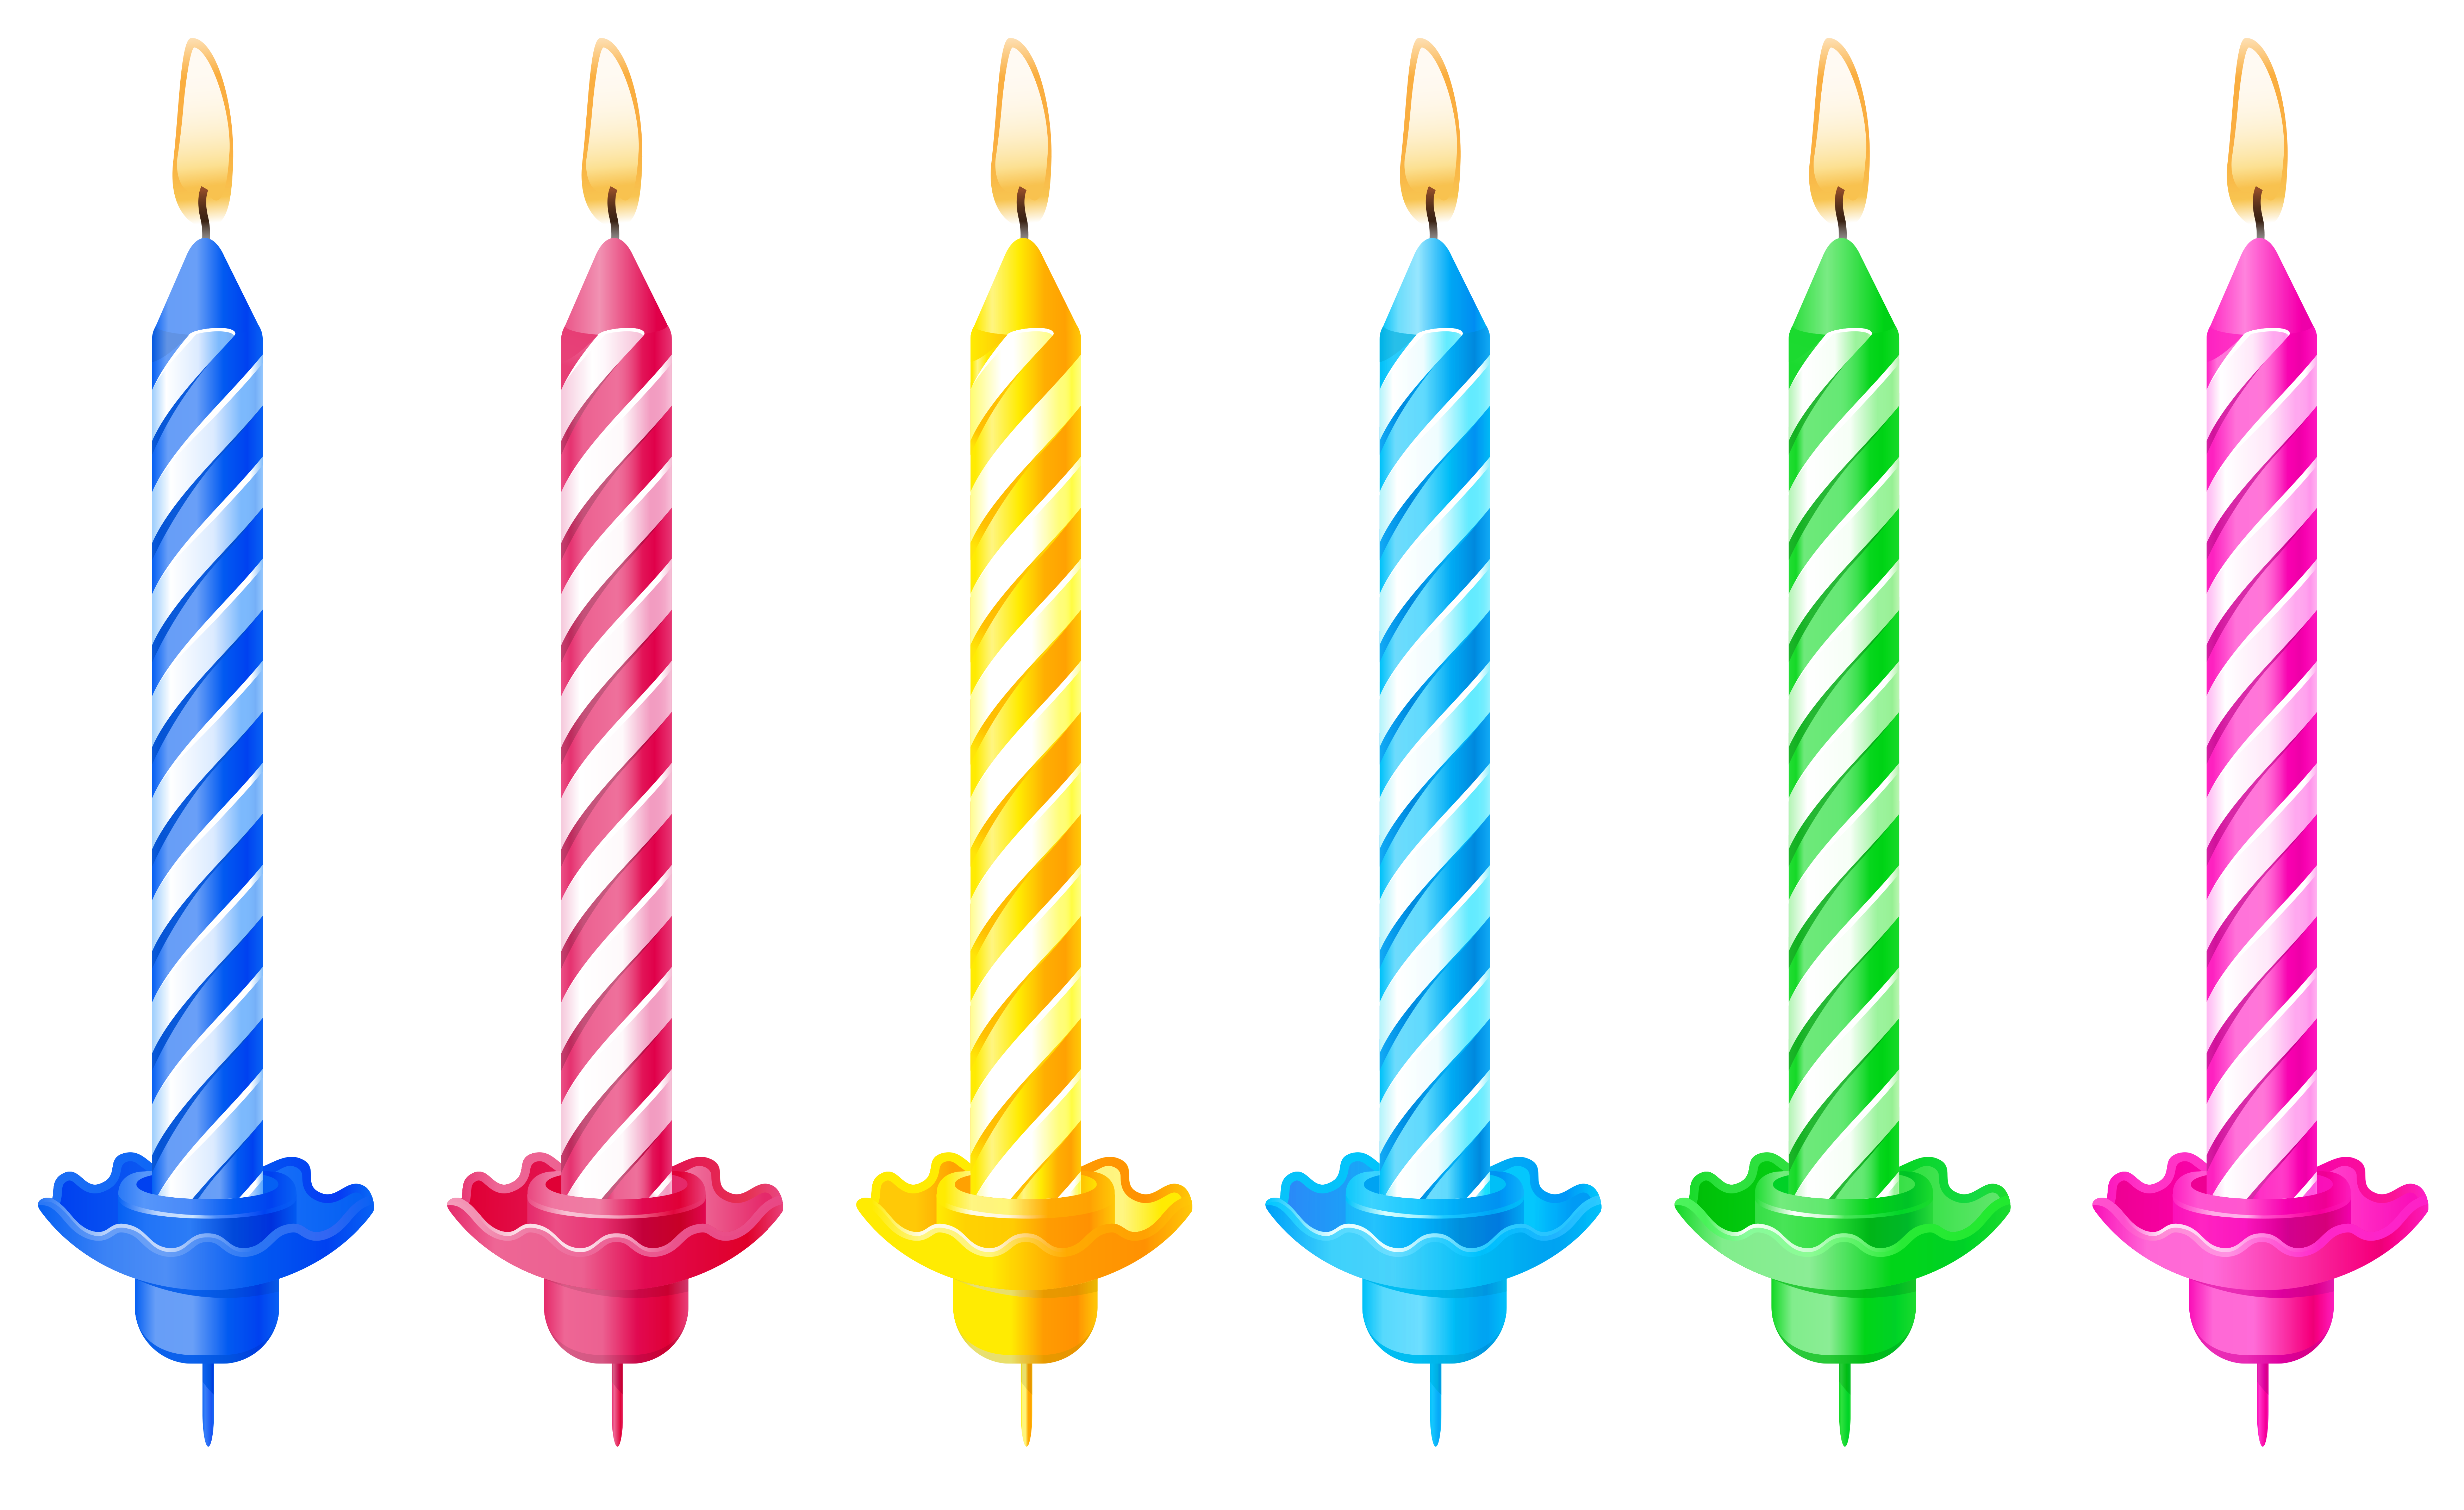 Free birthday candle clipart black and white stock Birthday Candle Clipart & Birthday Candle Clip Art Images ... black and white stock